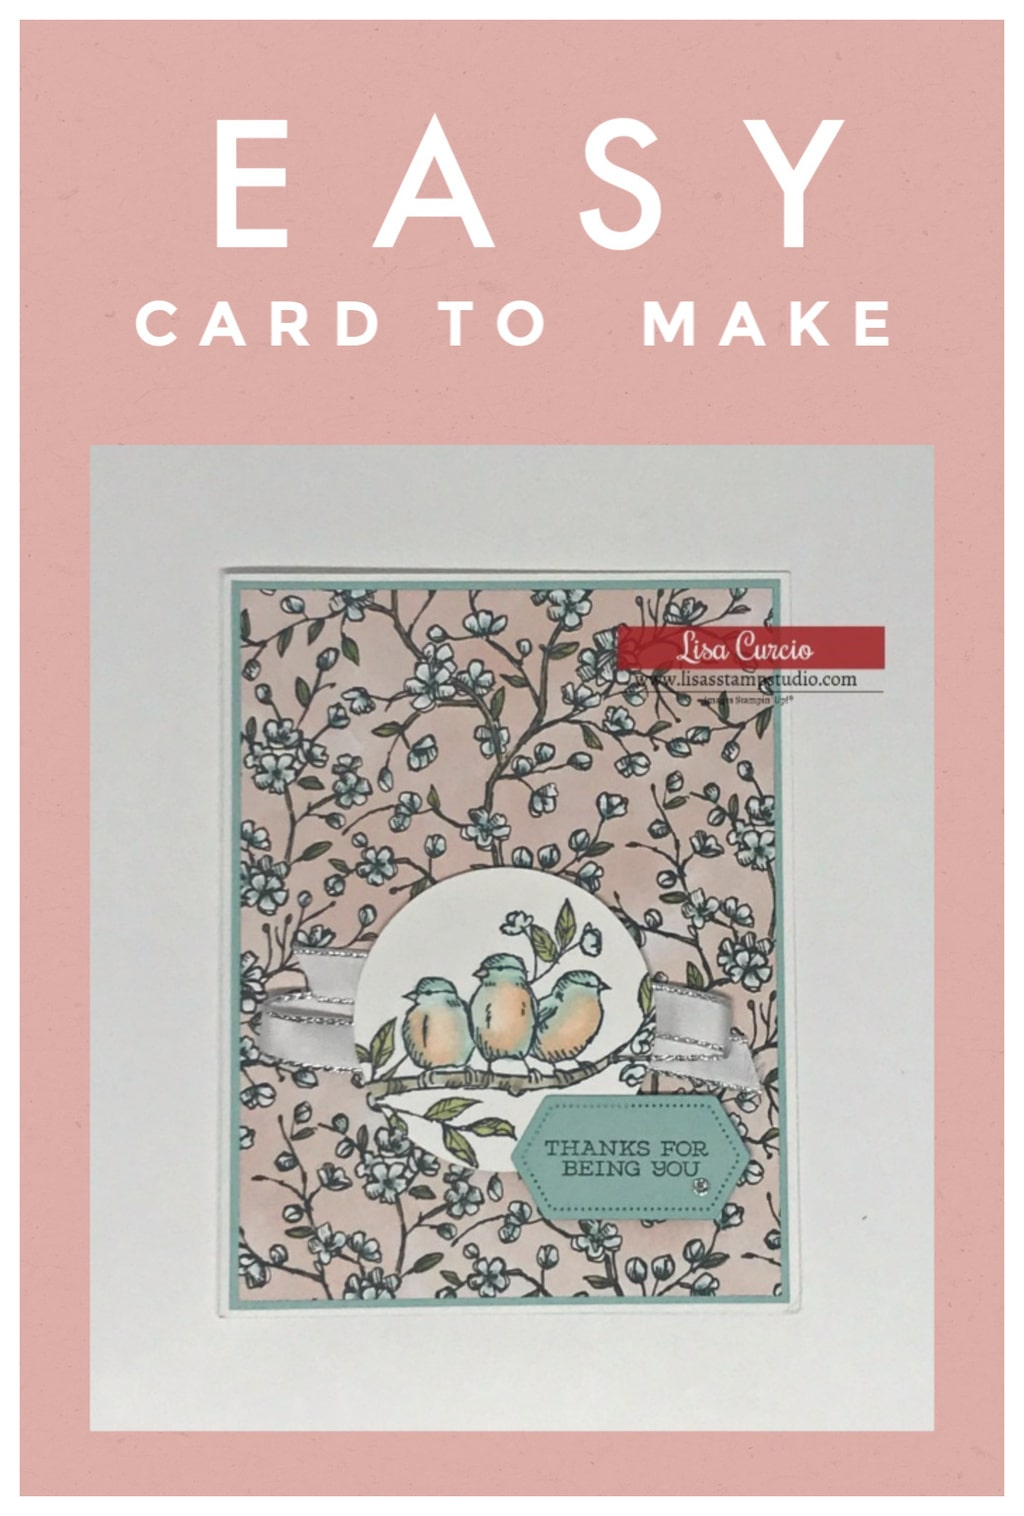 Easy-Card-to-Make-with-Birds-on-Tree-Limb-in-Pink-and-Blue